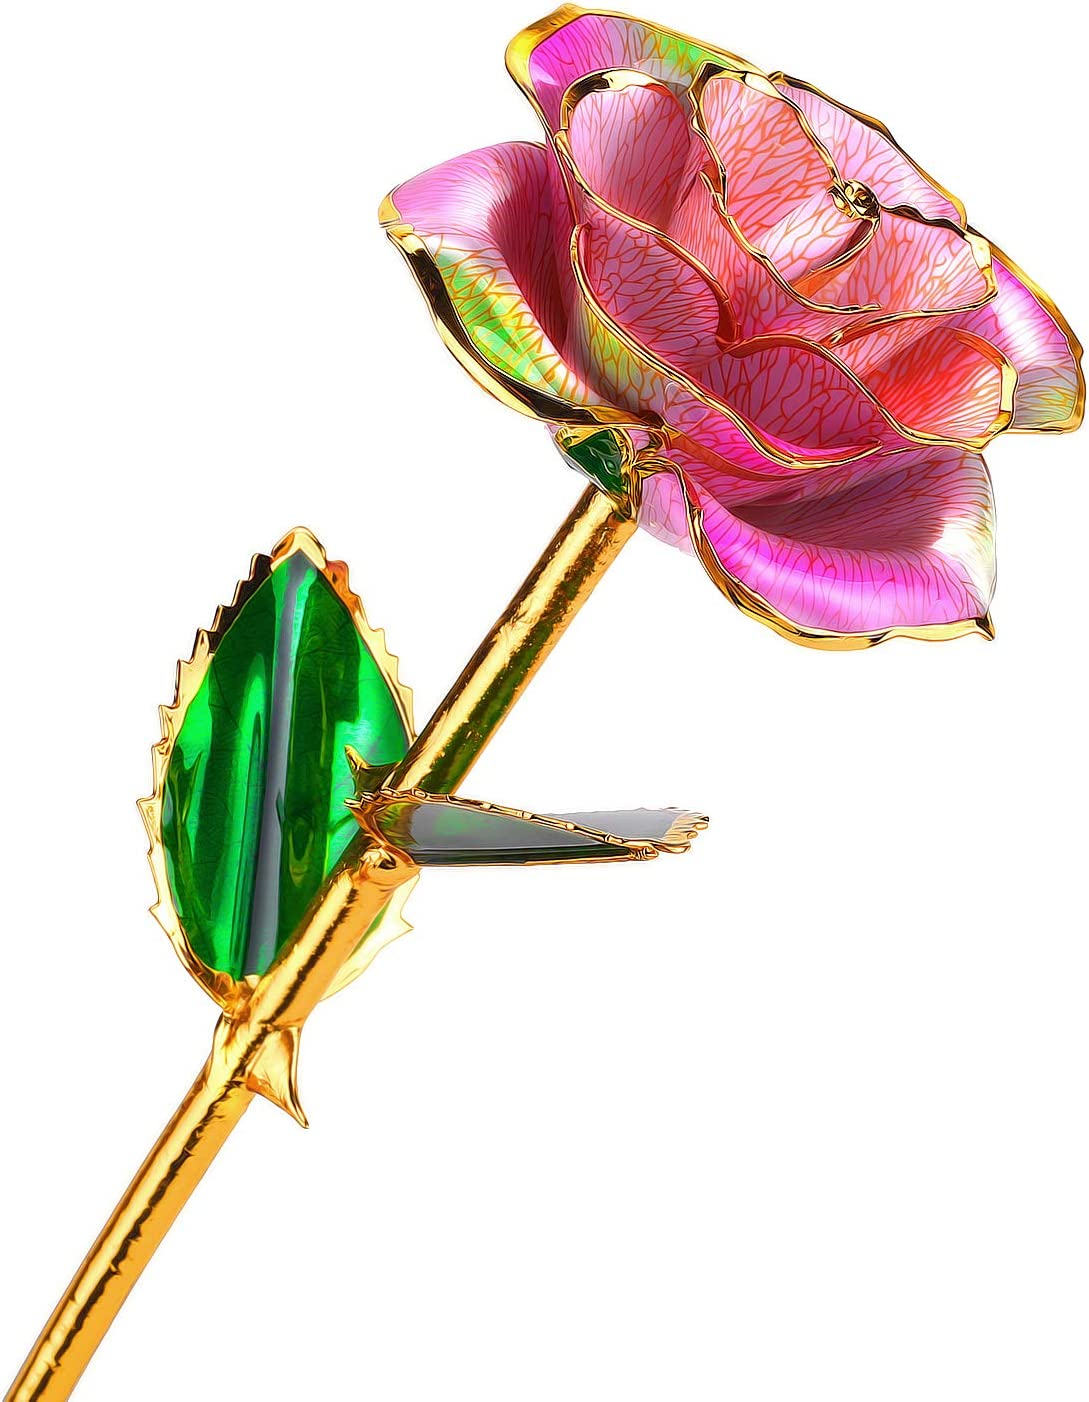 24k Gold Rose Flower with Long Stem Rose Dipped in Gold Gift for Women Girls on Birthday, Valentine's Day, Mother's Day, Christmas (Pink+Green)